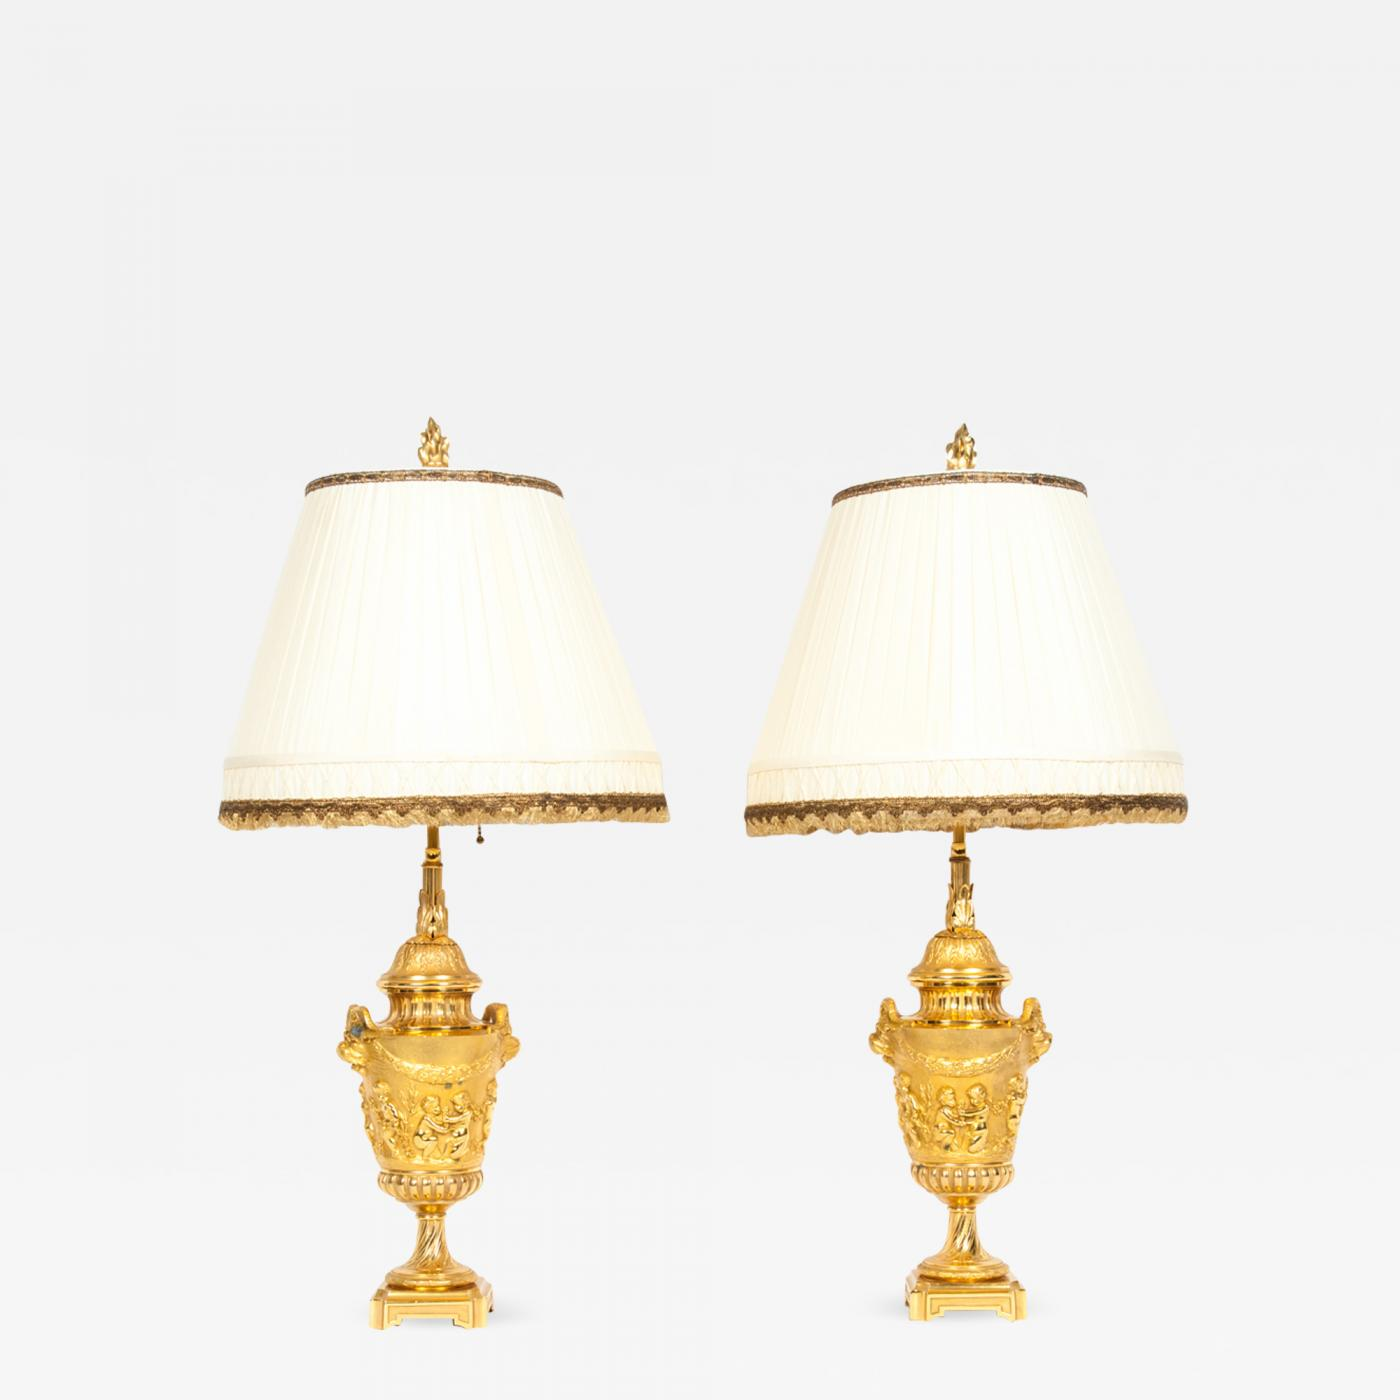 Neoclassical lighting Study Click On Image To Enlarge Dakshco Pair Of Neoclassical Gilt Bronze Urn Form Table Lamps